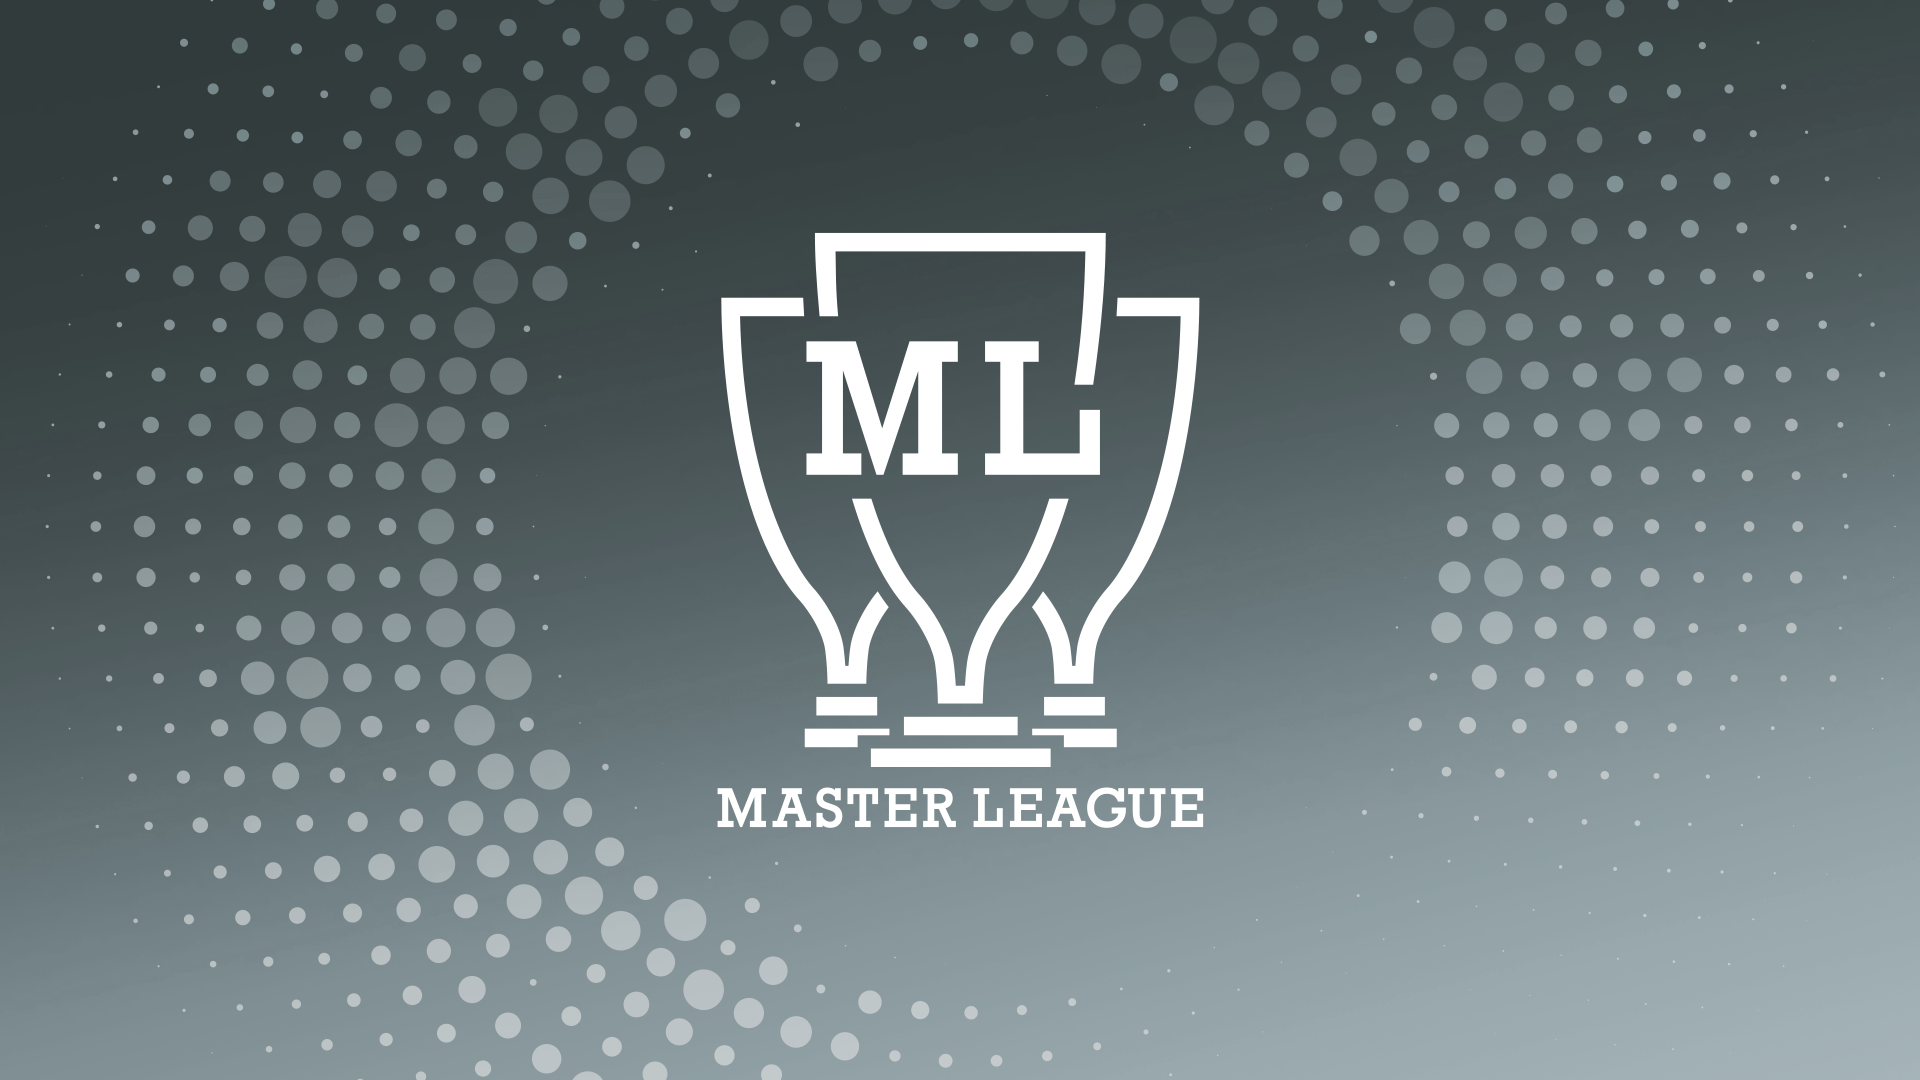 Won in Master League